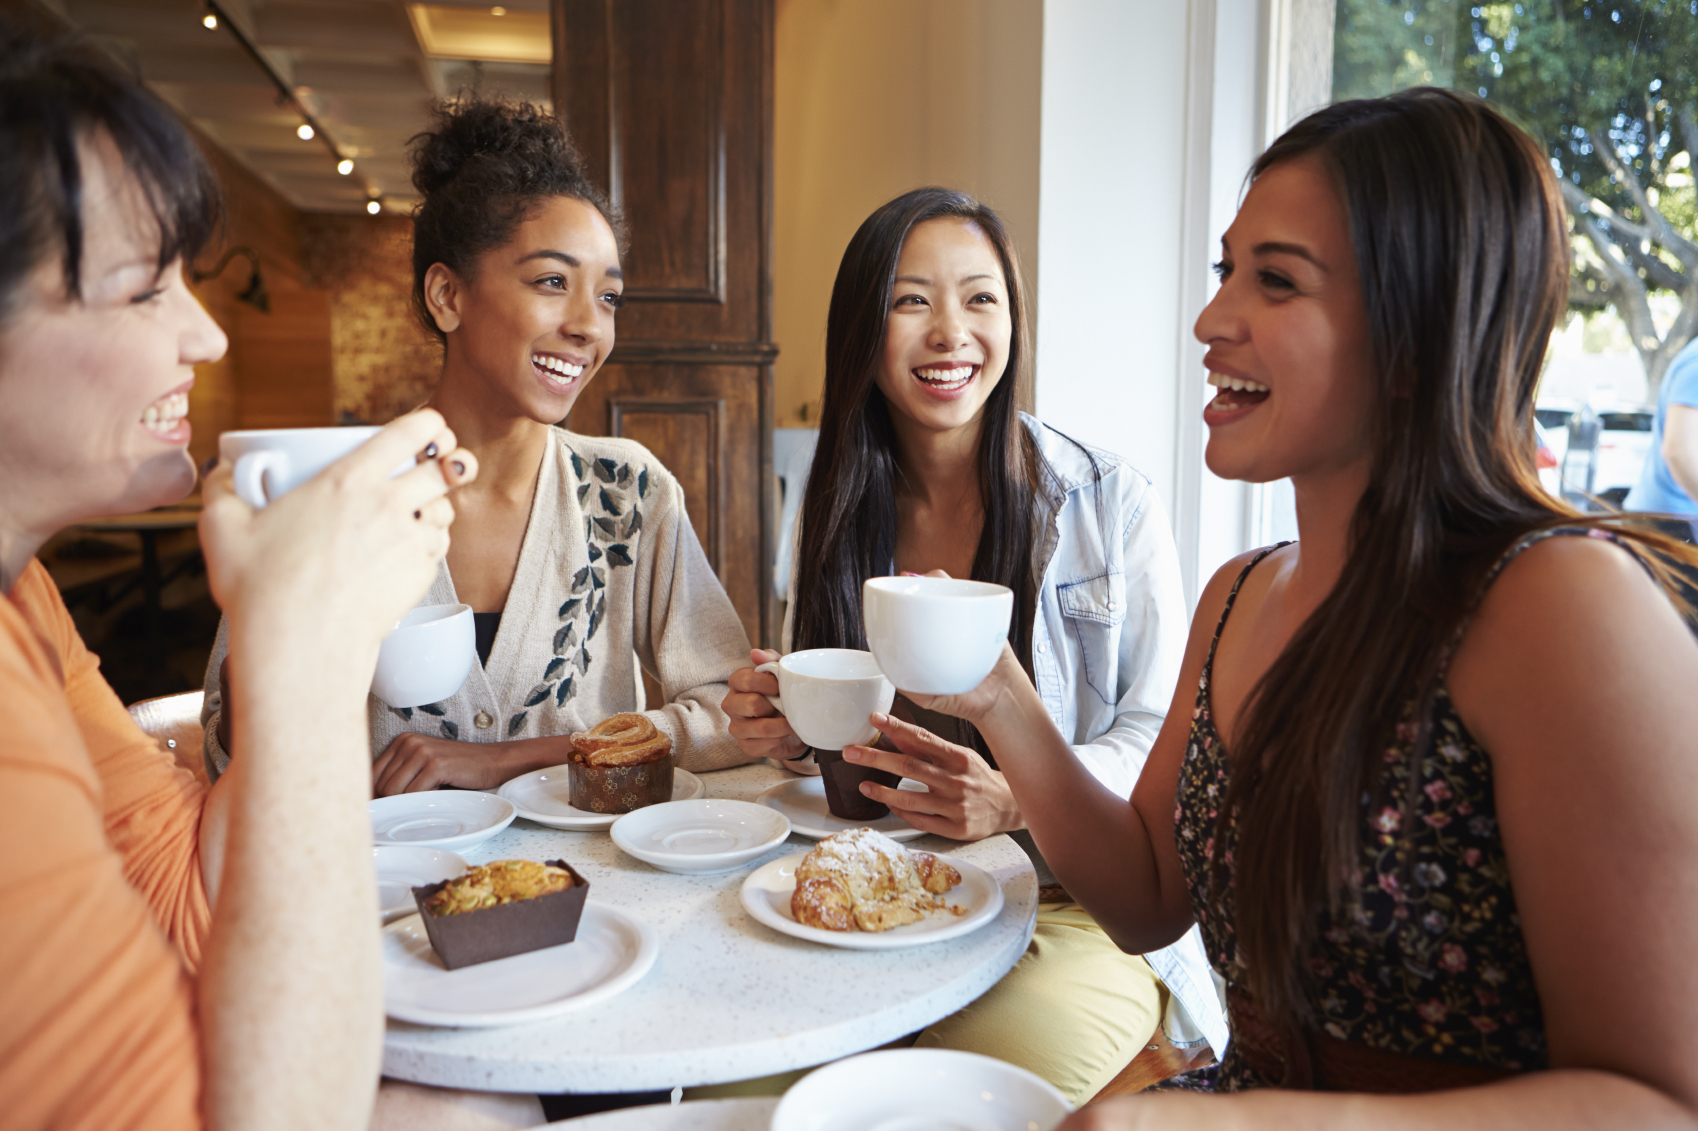 5 ways to hit the jackpot networking in vegas the huffington post 2015 07 22 1437579638 7781584 womenlunch jpg